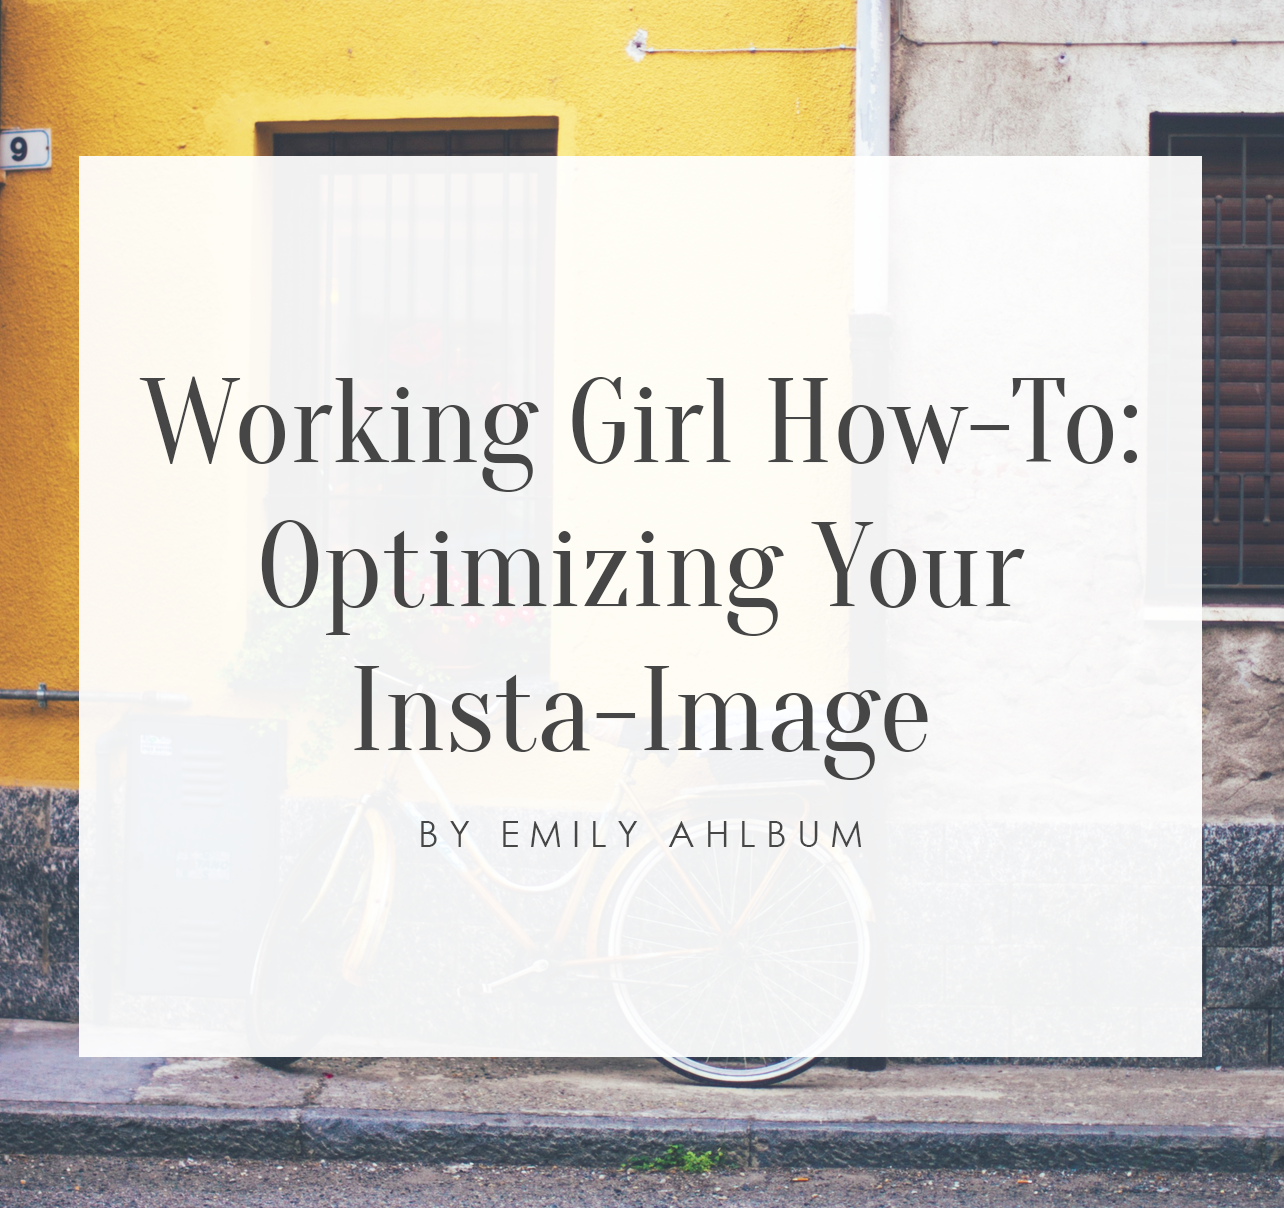 Working Girl How-To: Optimizing Your Insta-Image